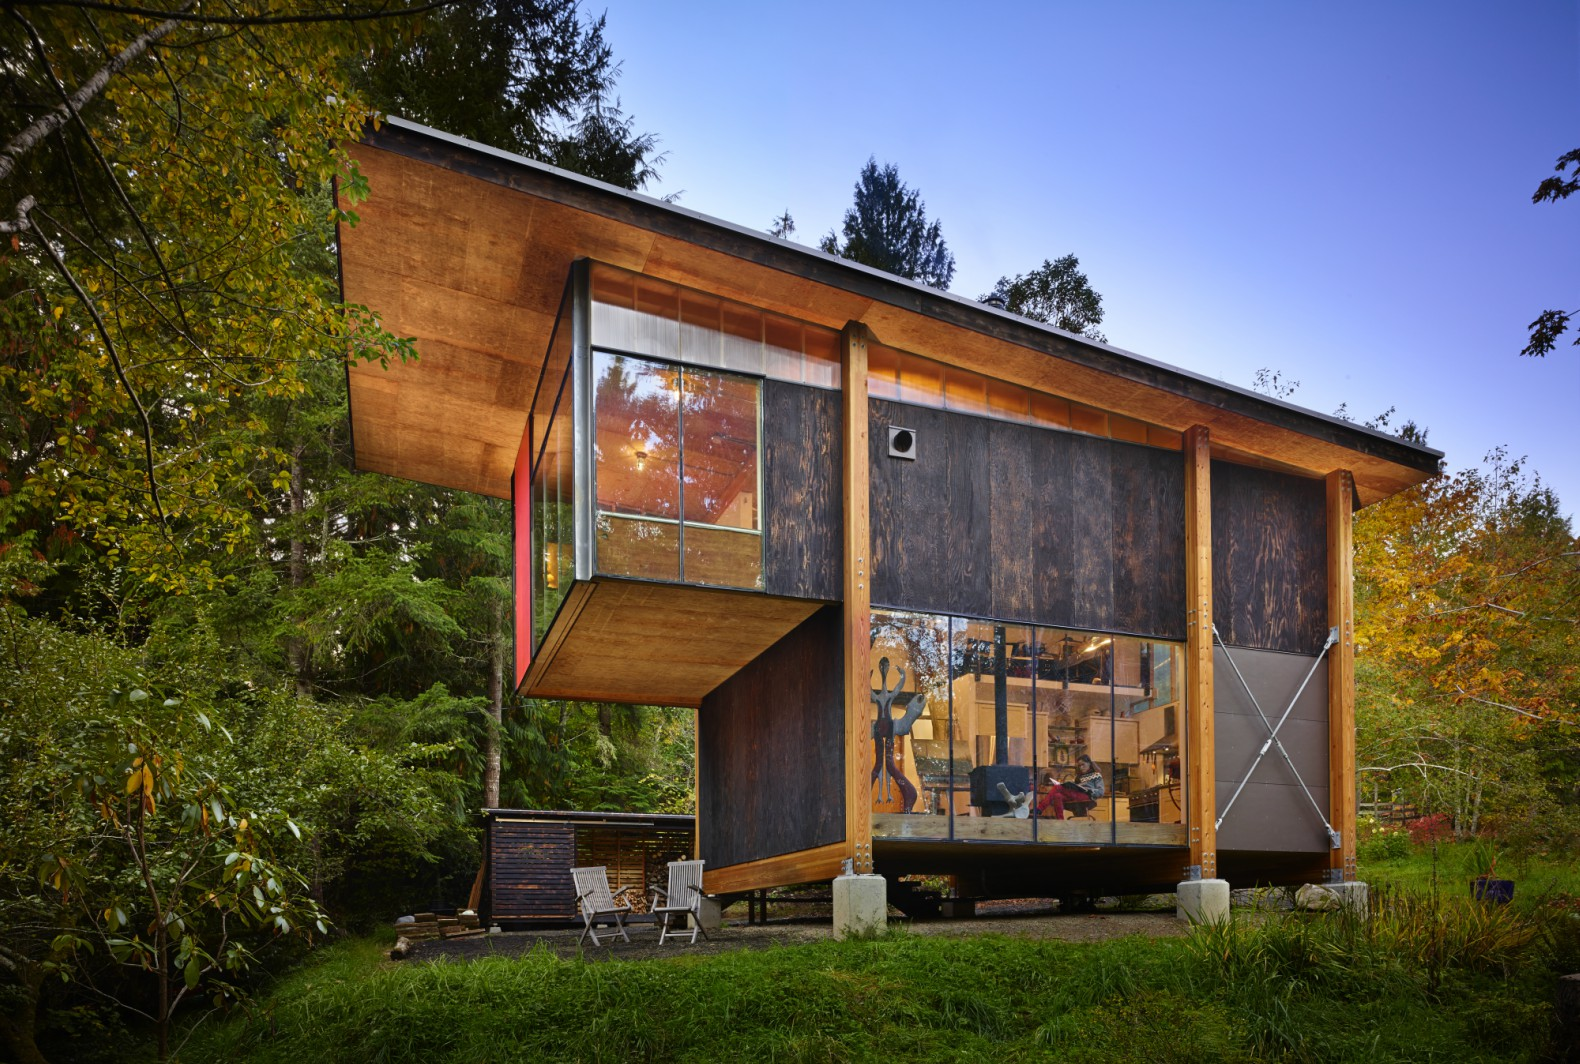 Superieur This Puget Sound Eco Cabin Is Made Almost Entirely From Reclaimed Materials